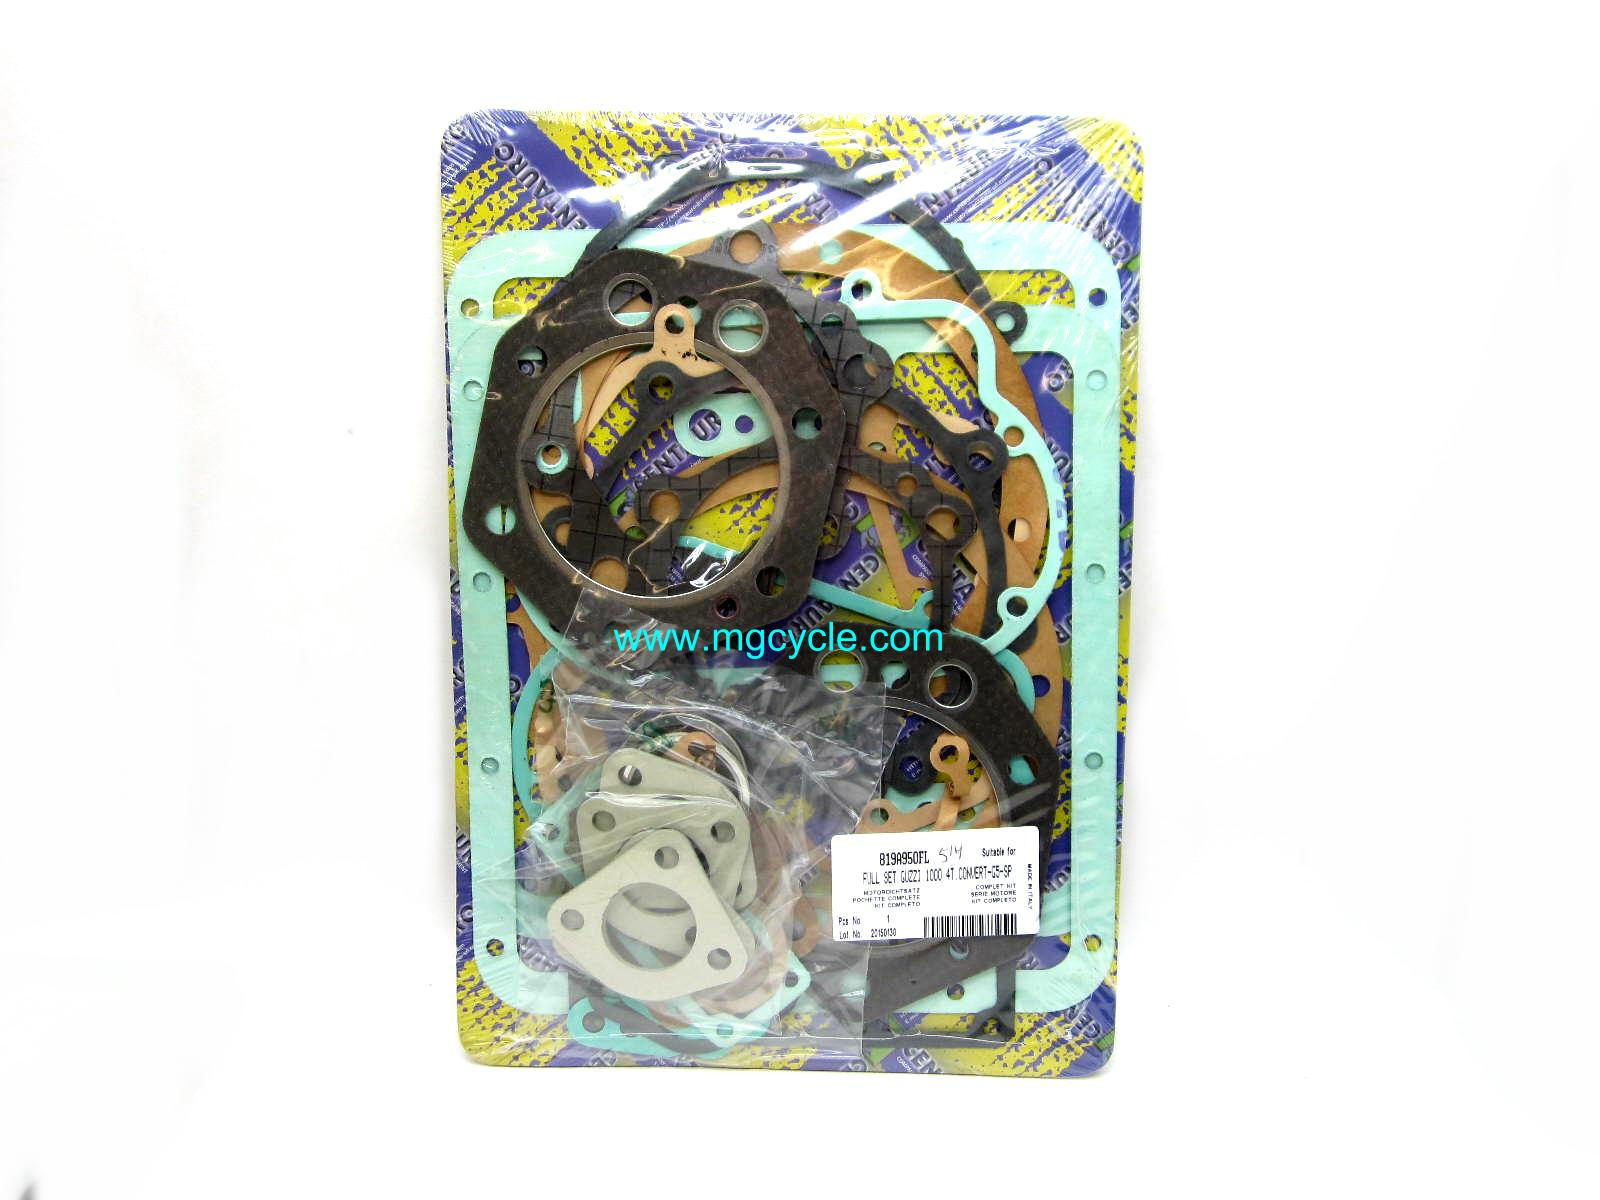 CLEARANCE Gasket set SP1000, V1000 G5, Convert, CX100